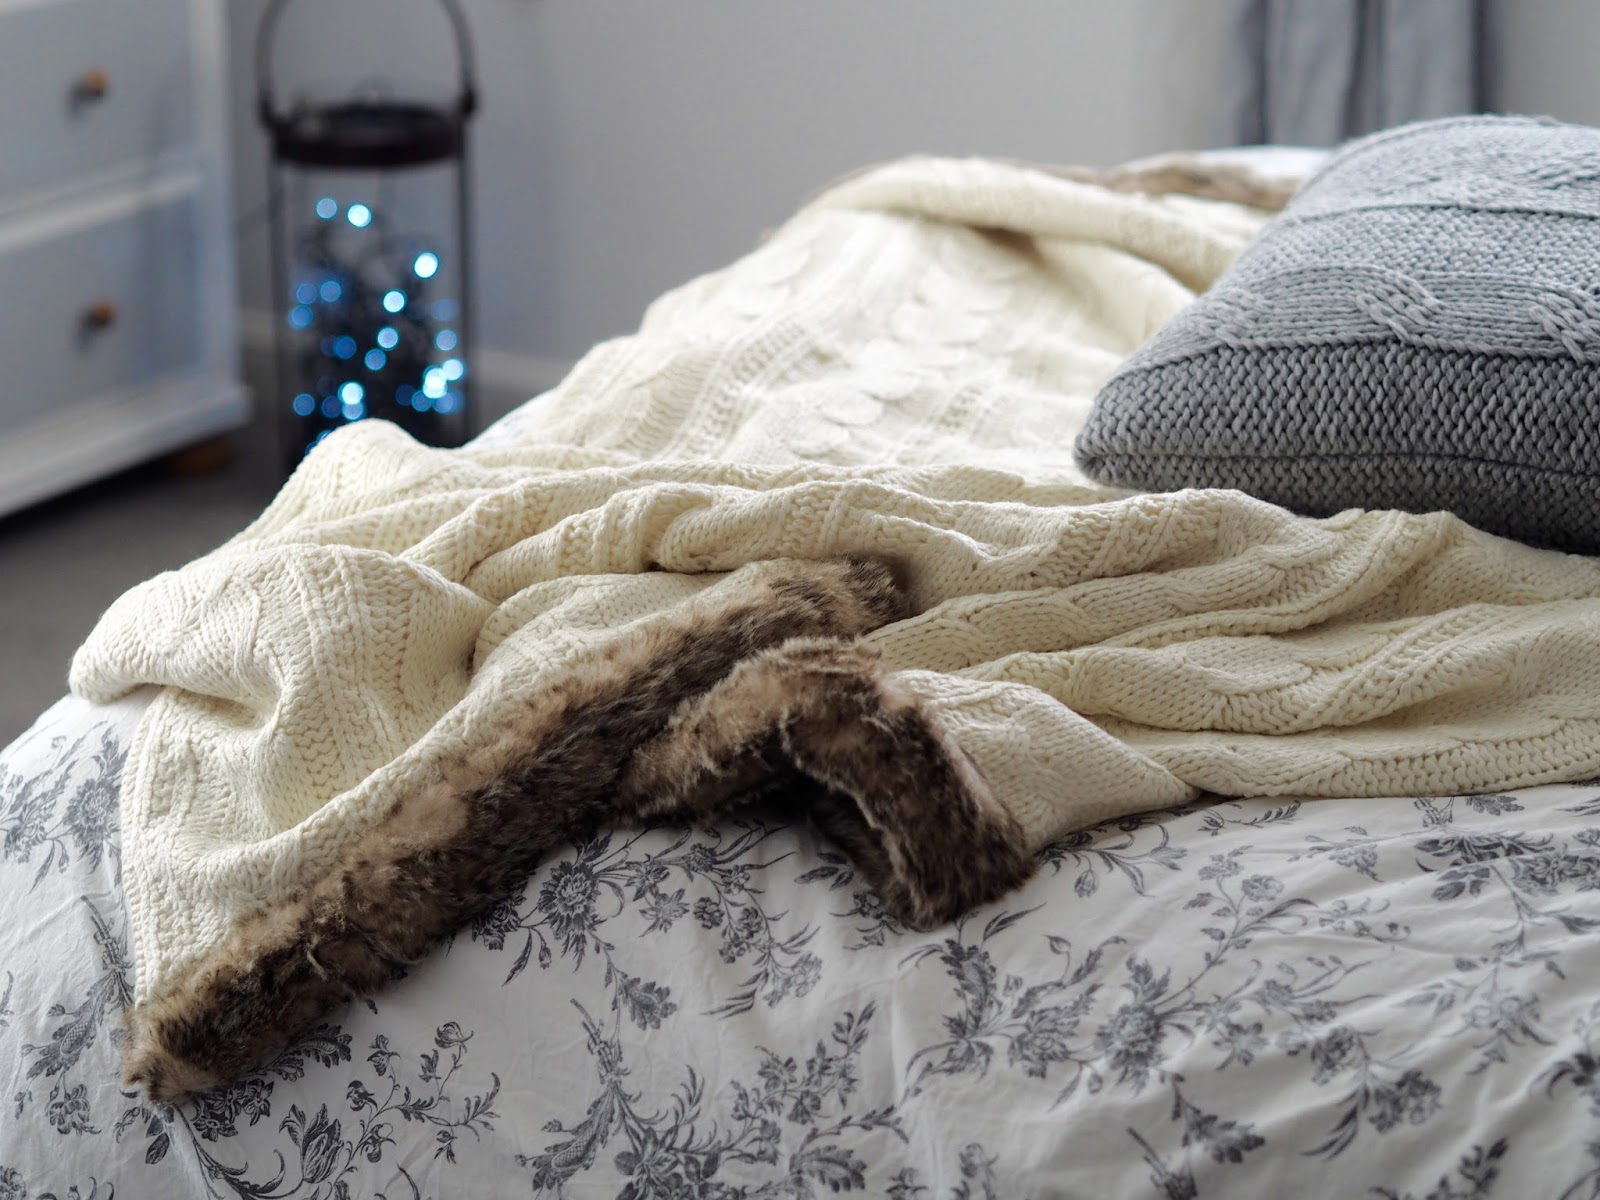 6 ways to 'hygge' your home in time for Christmas.